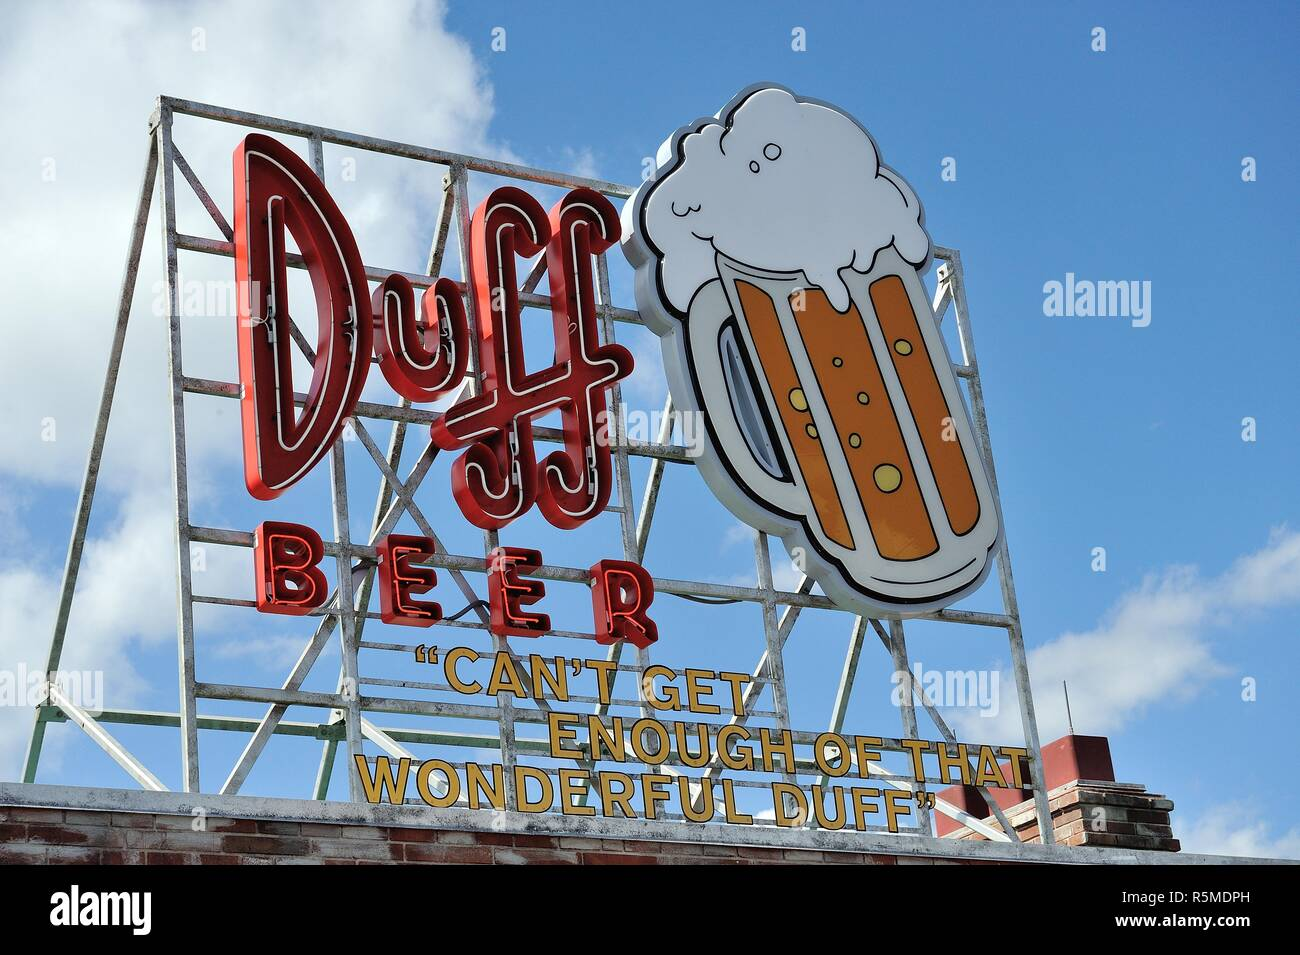 Duff Beer Sign - Stock Image